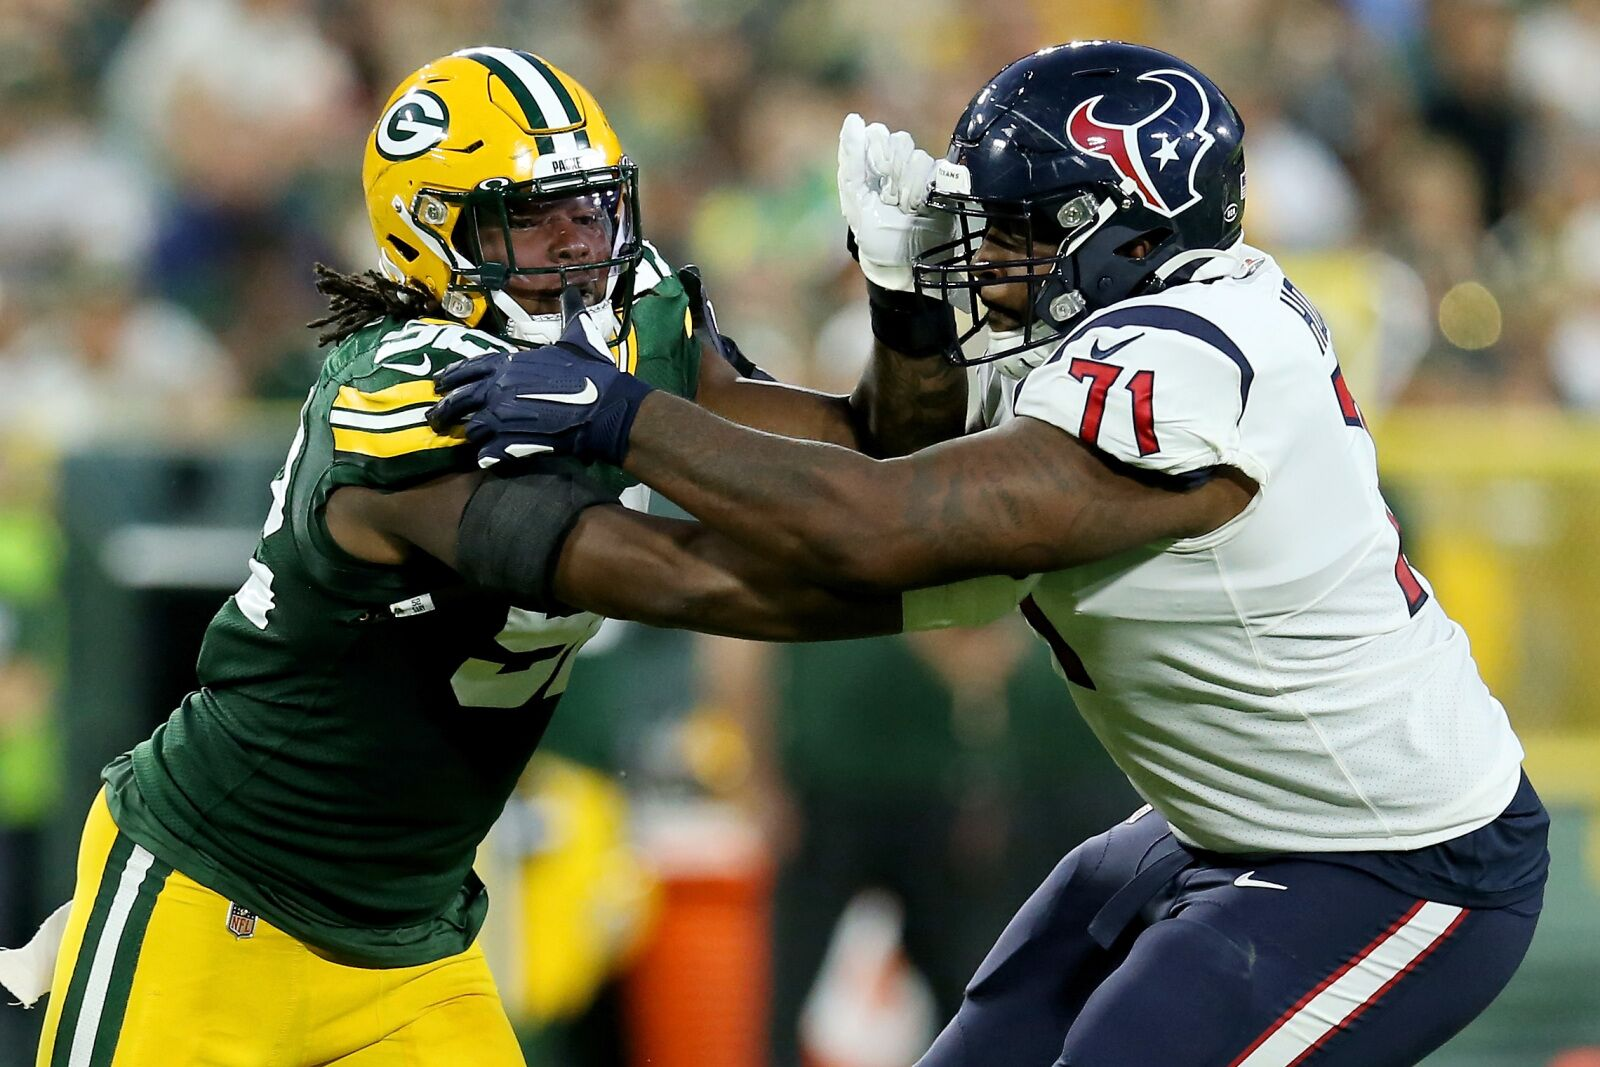 Green Bay Packers: No need to worry about Rashan Gary